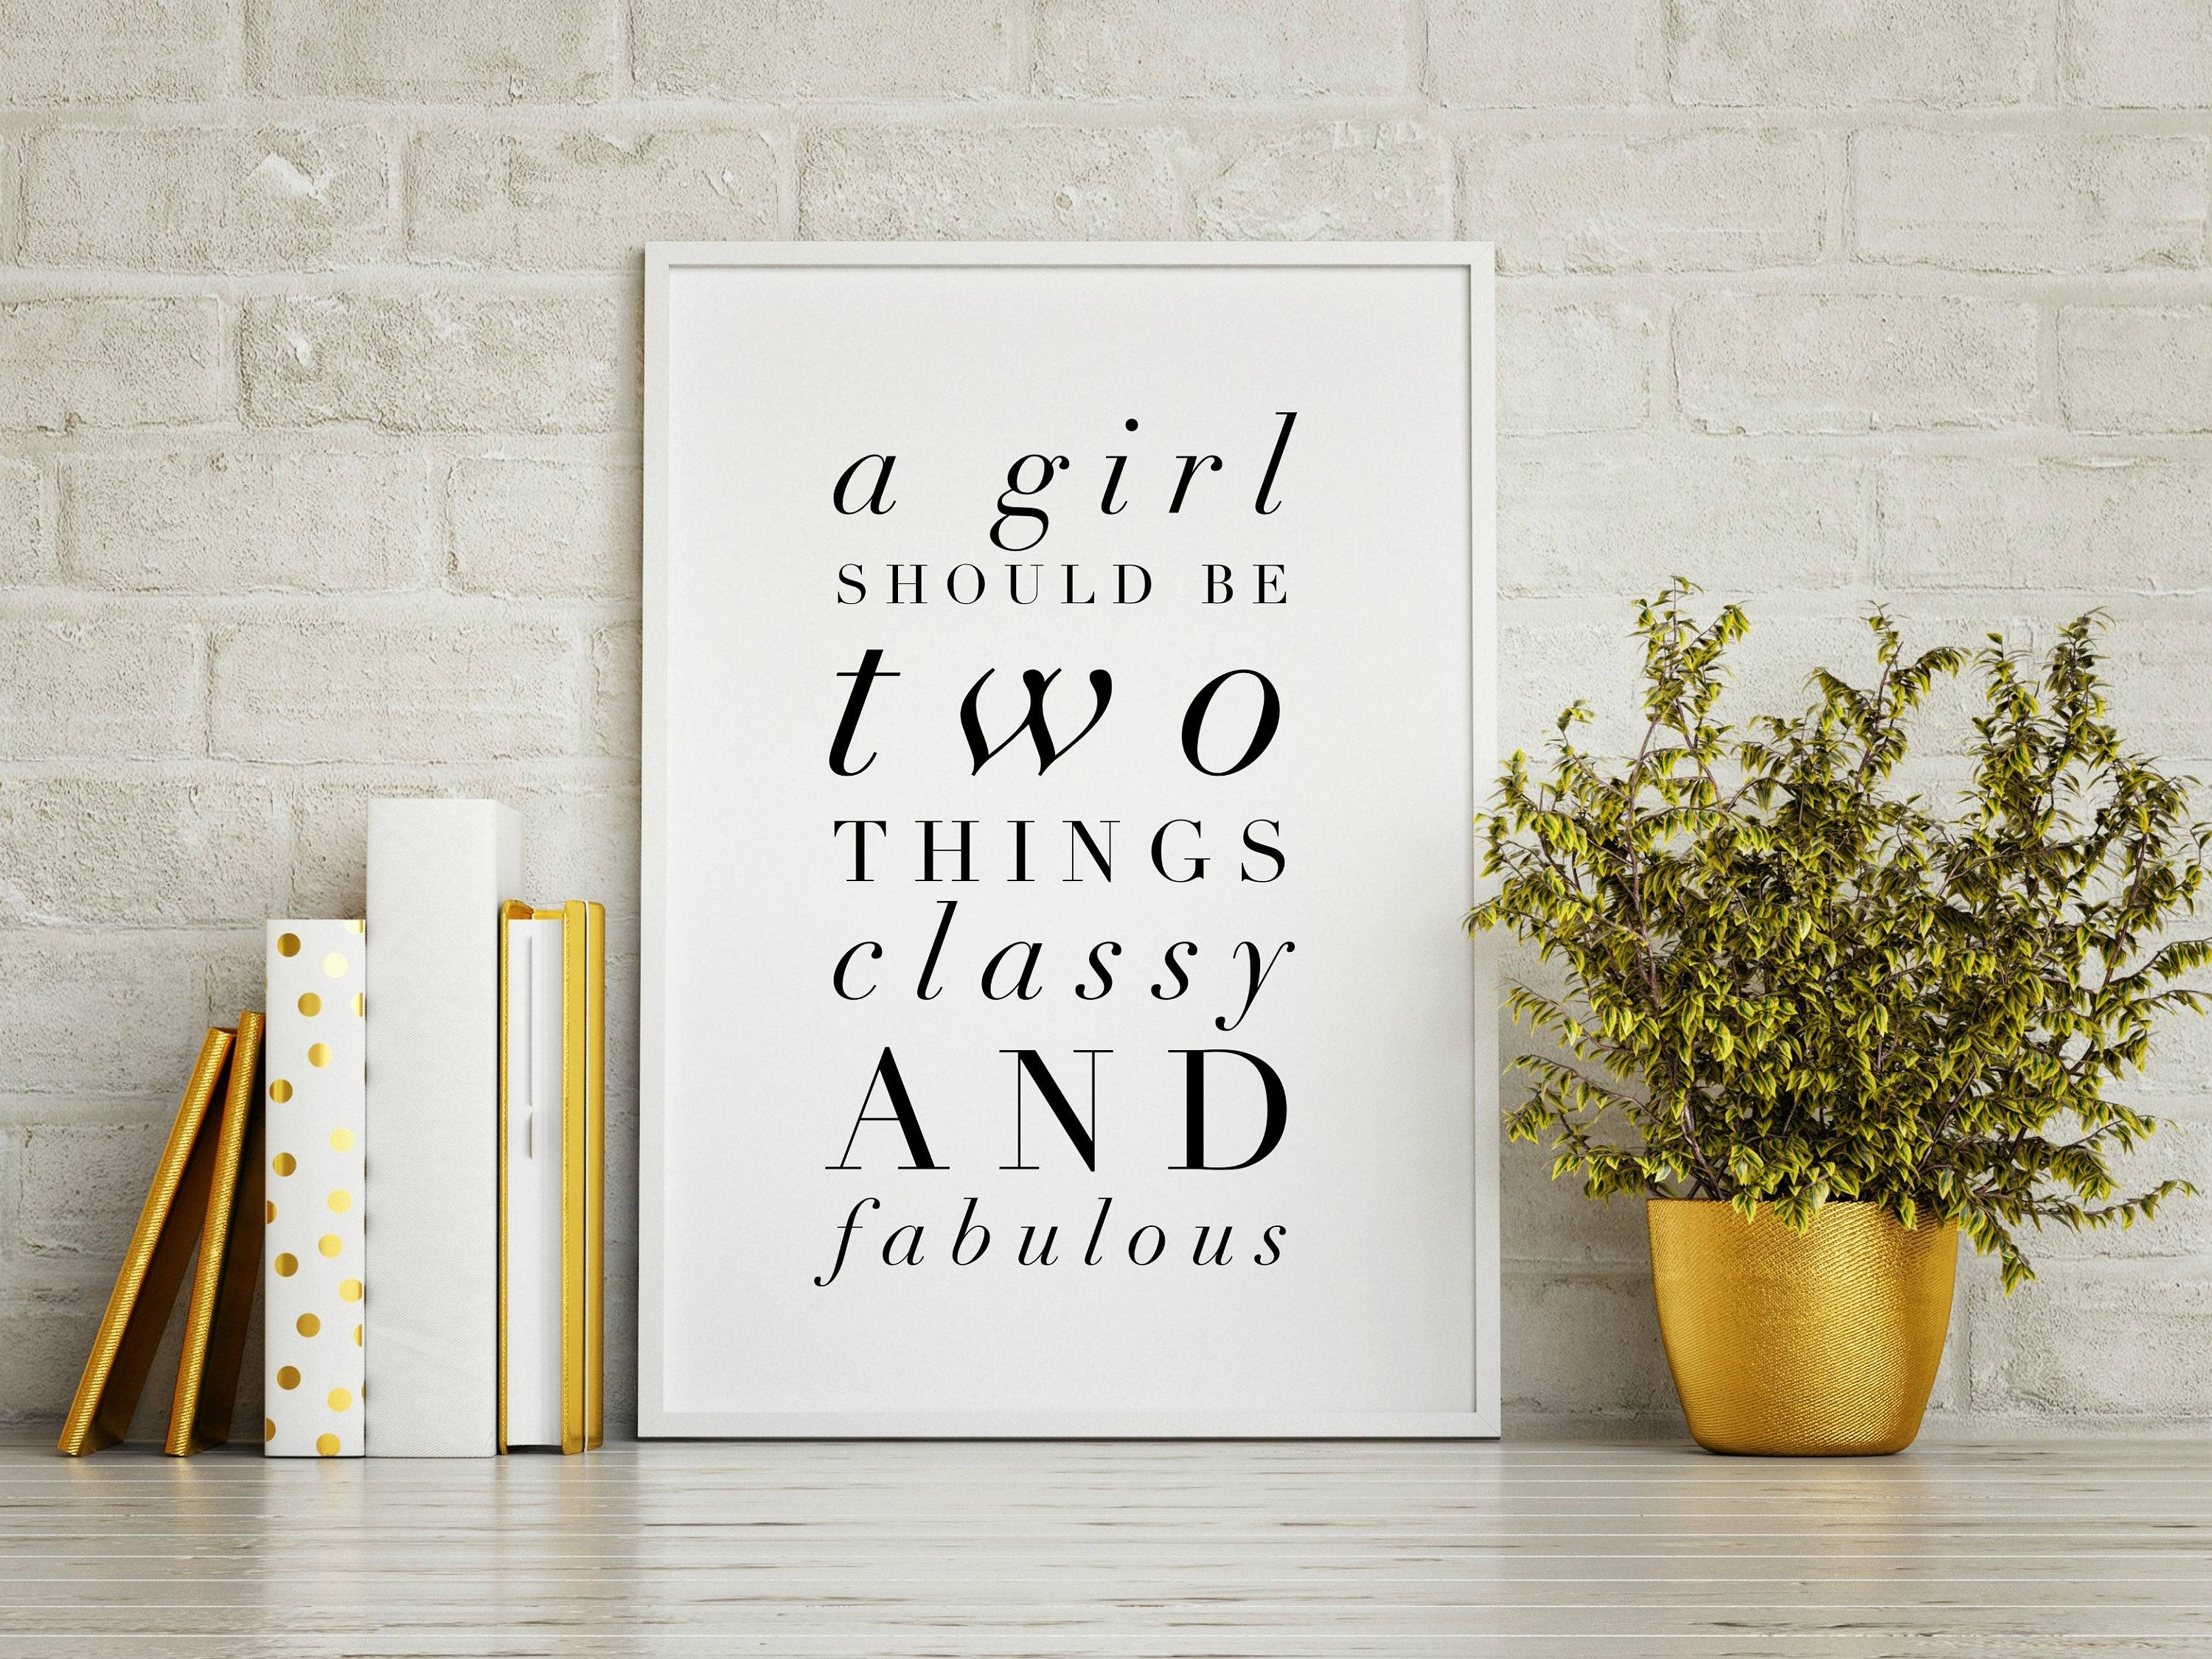 Classy And Fabulous – Coco Chanel Quote, High Fashion Wall Art With Newest Coco Chanel Wall Stickers (View 16 of 30)